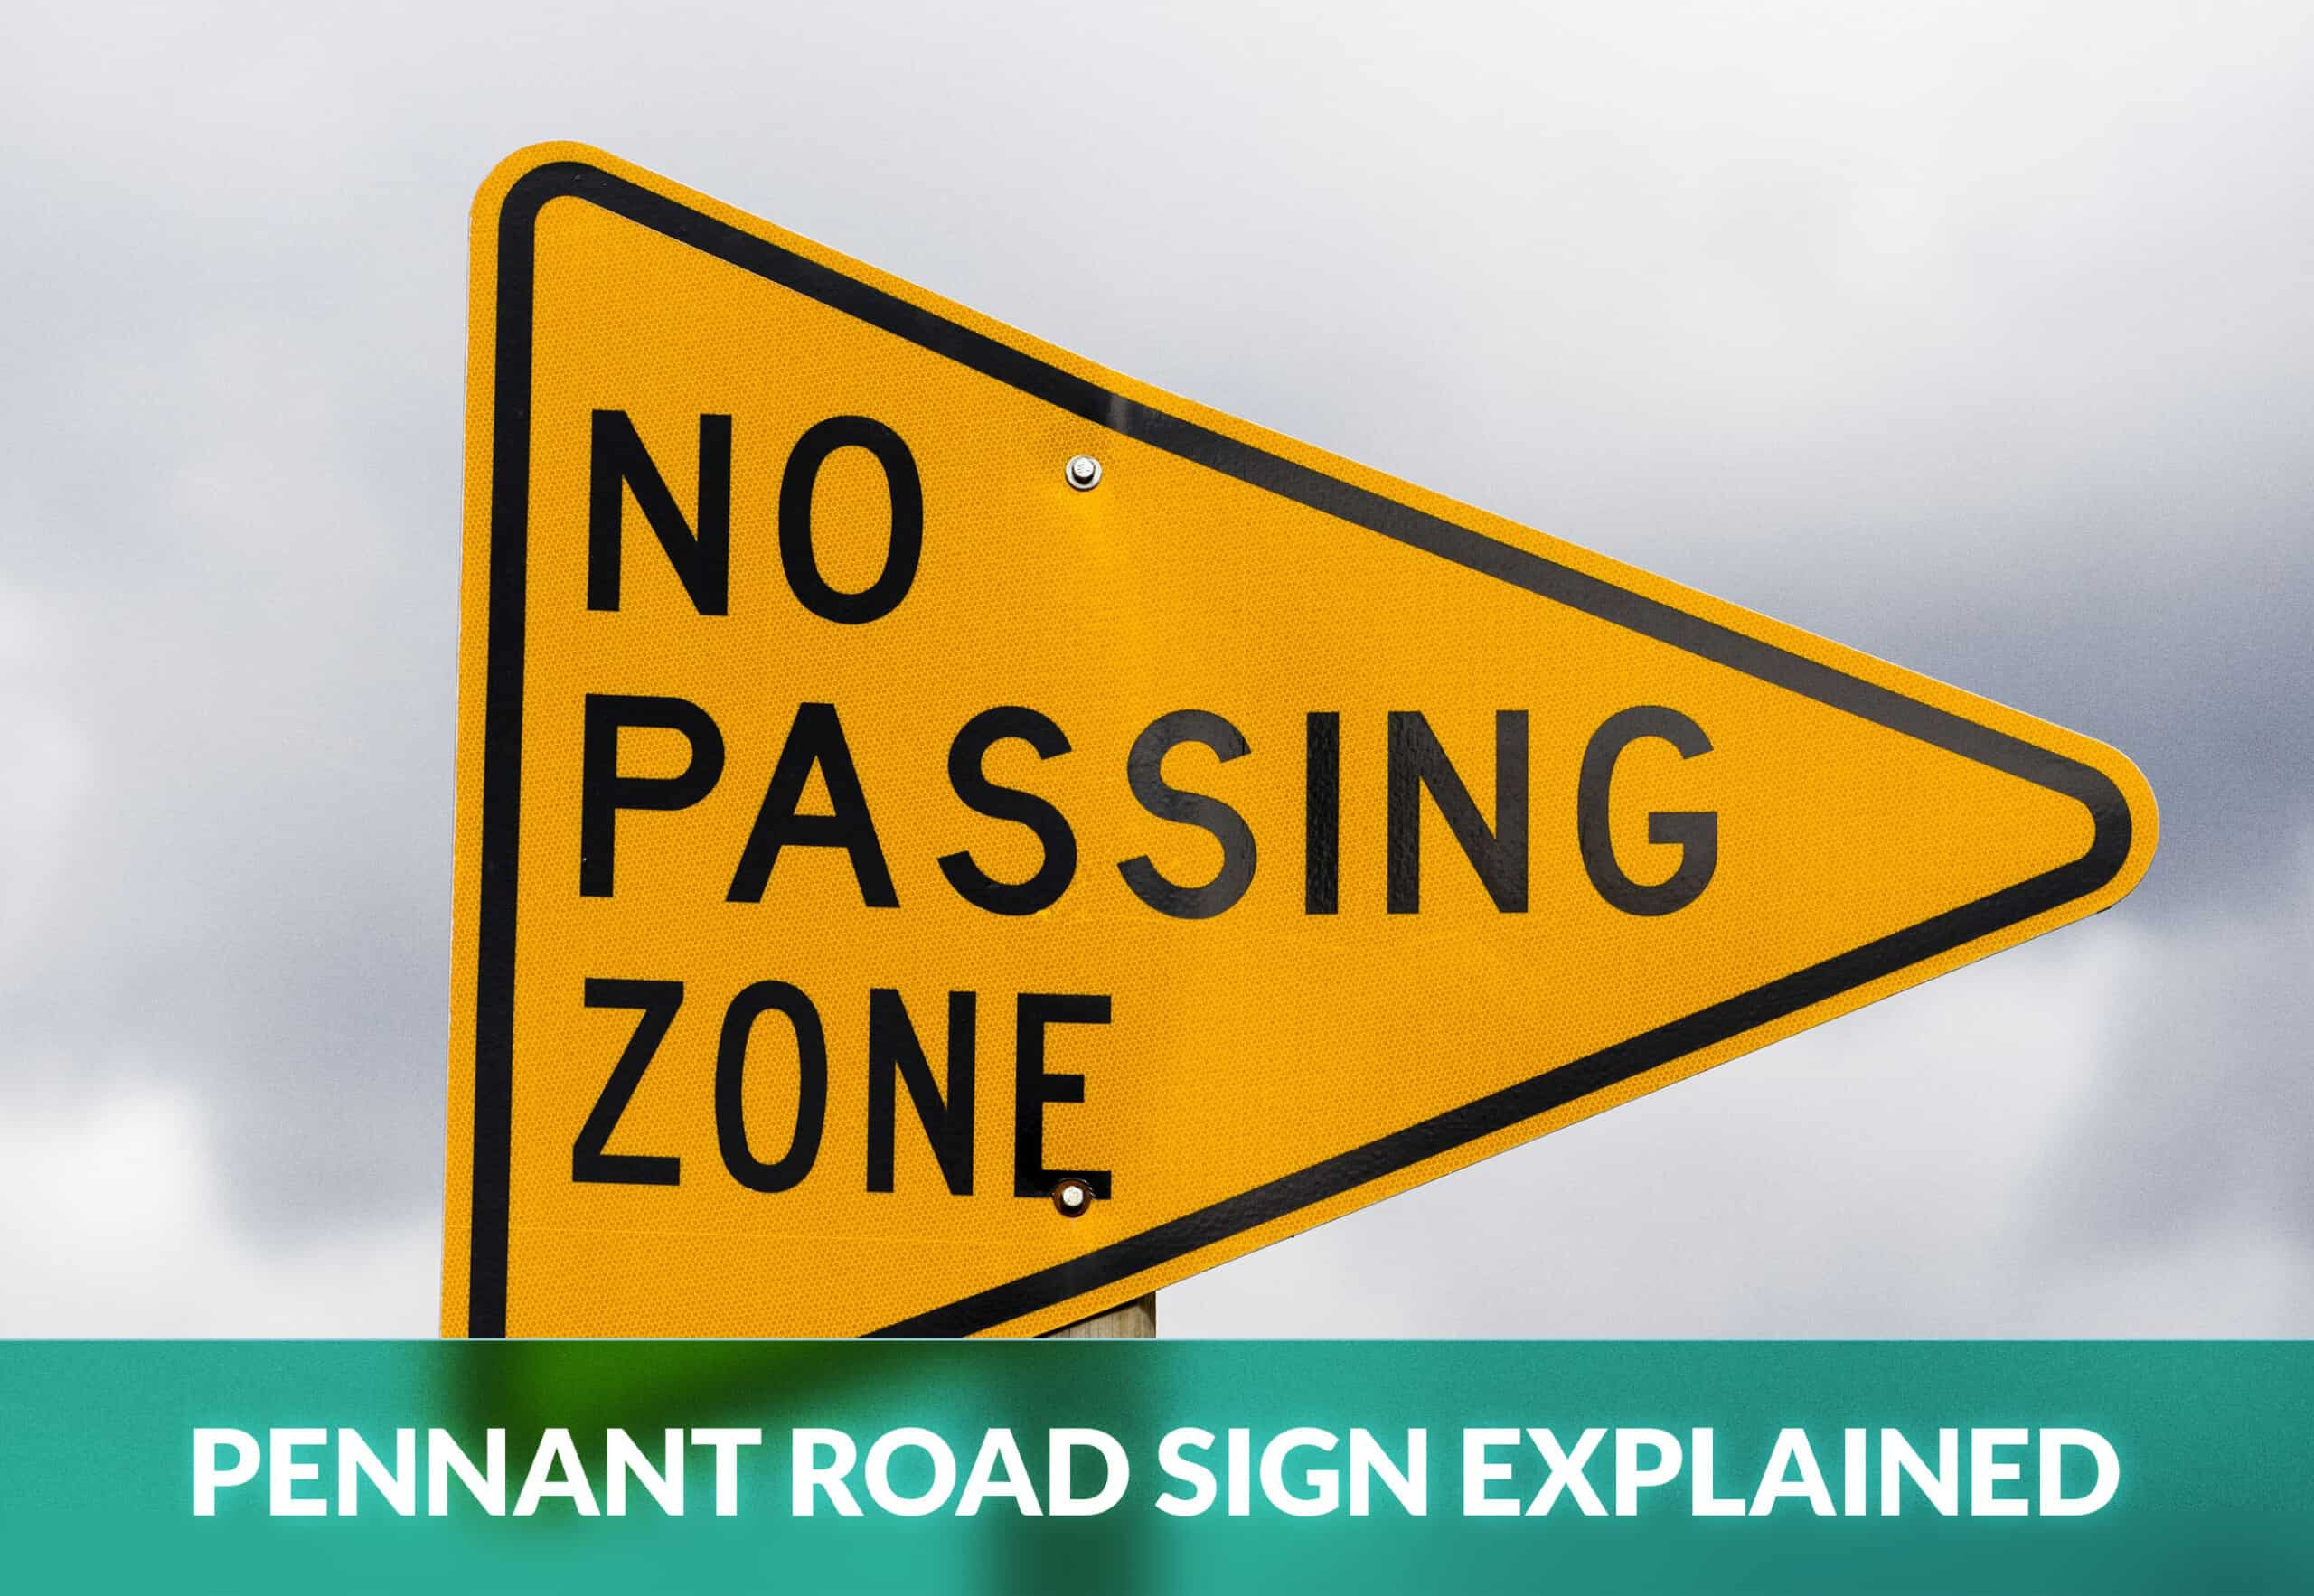 PENNANT ROAD SIGN EXPLAINED